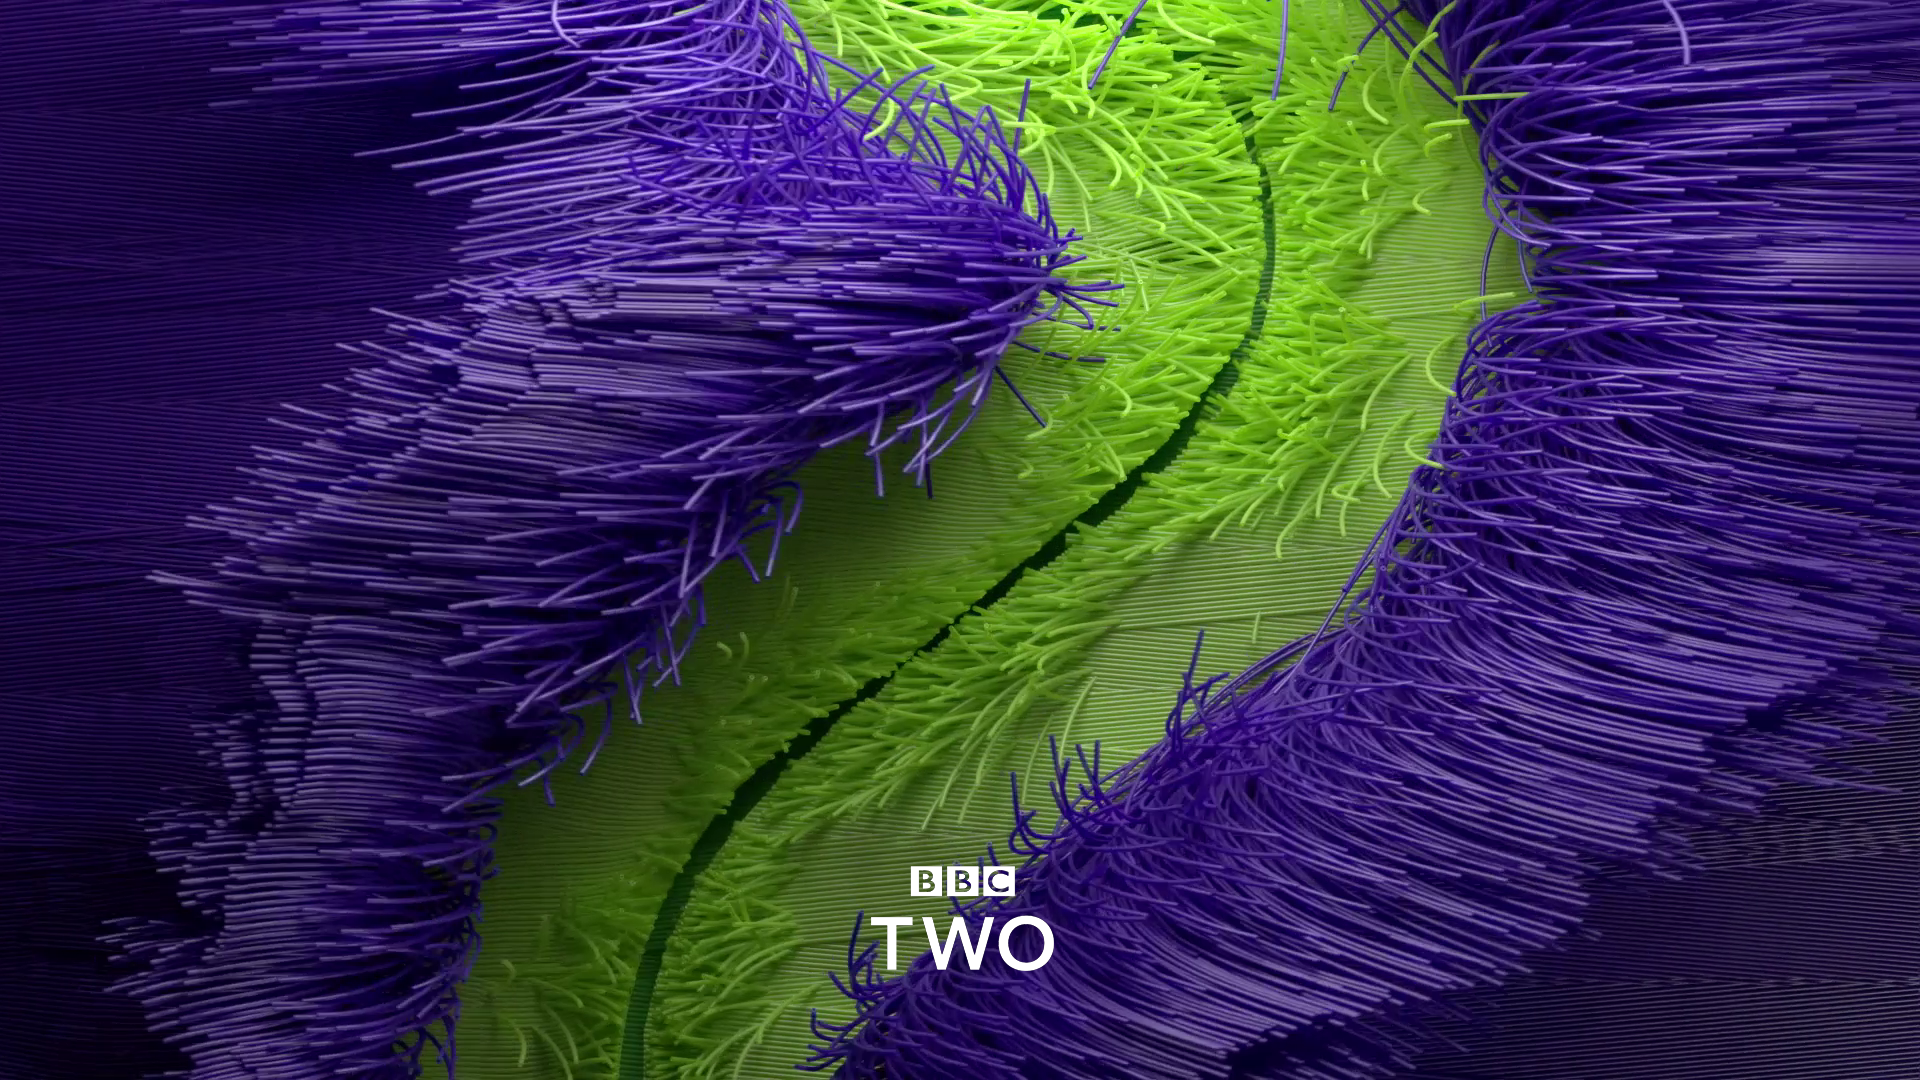 BBC2 04.png